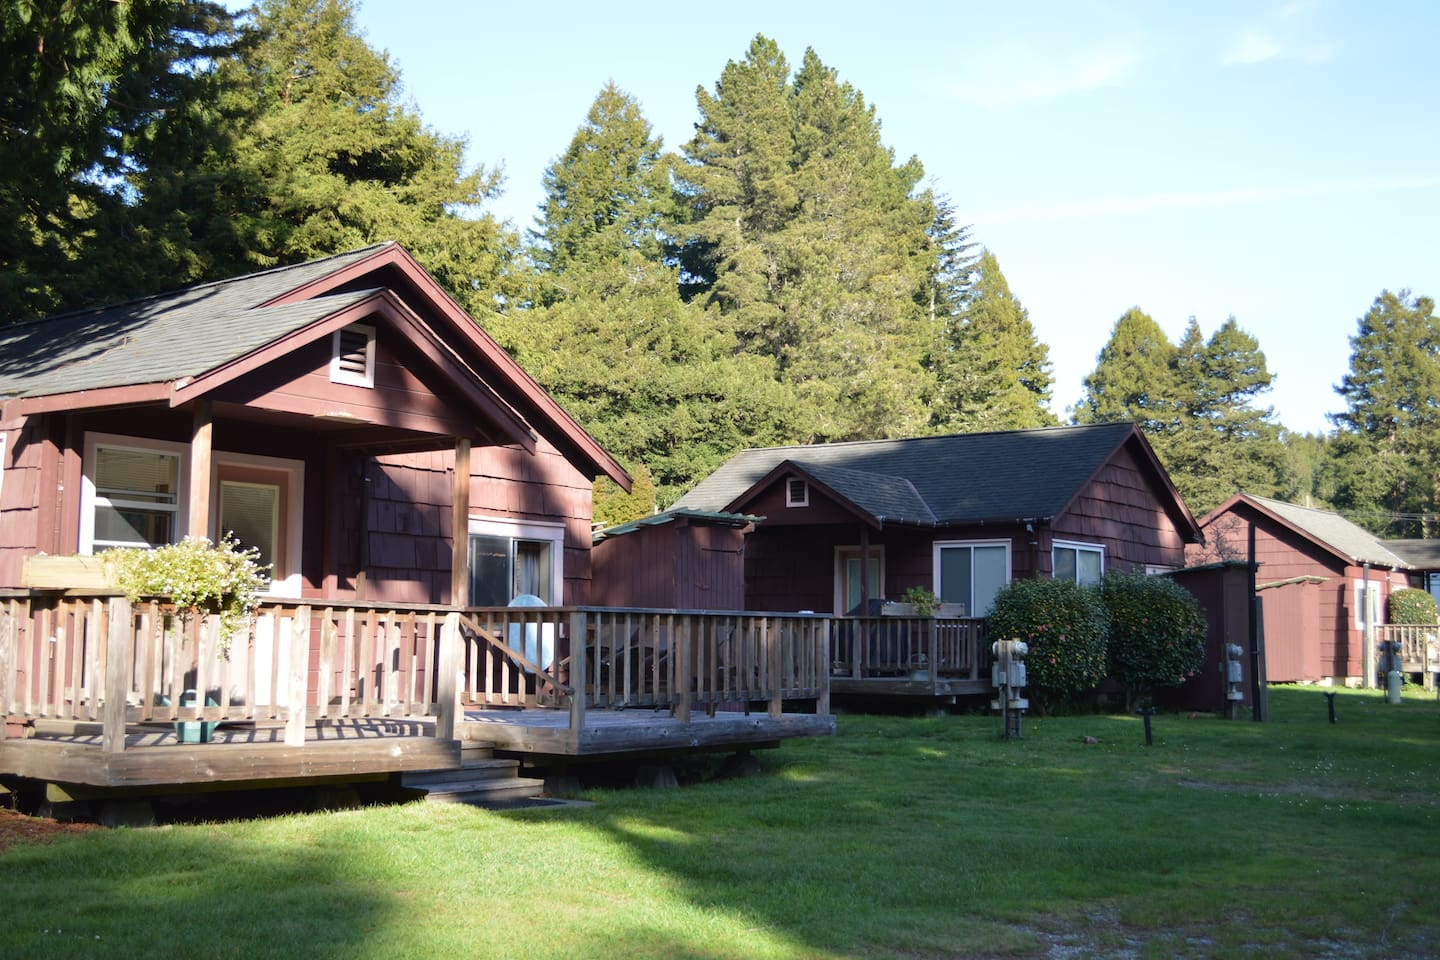 Sylvan Harbor's three humble cabins, with Cabin #1 in the foreground.